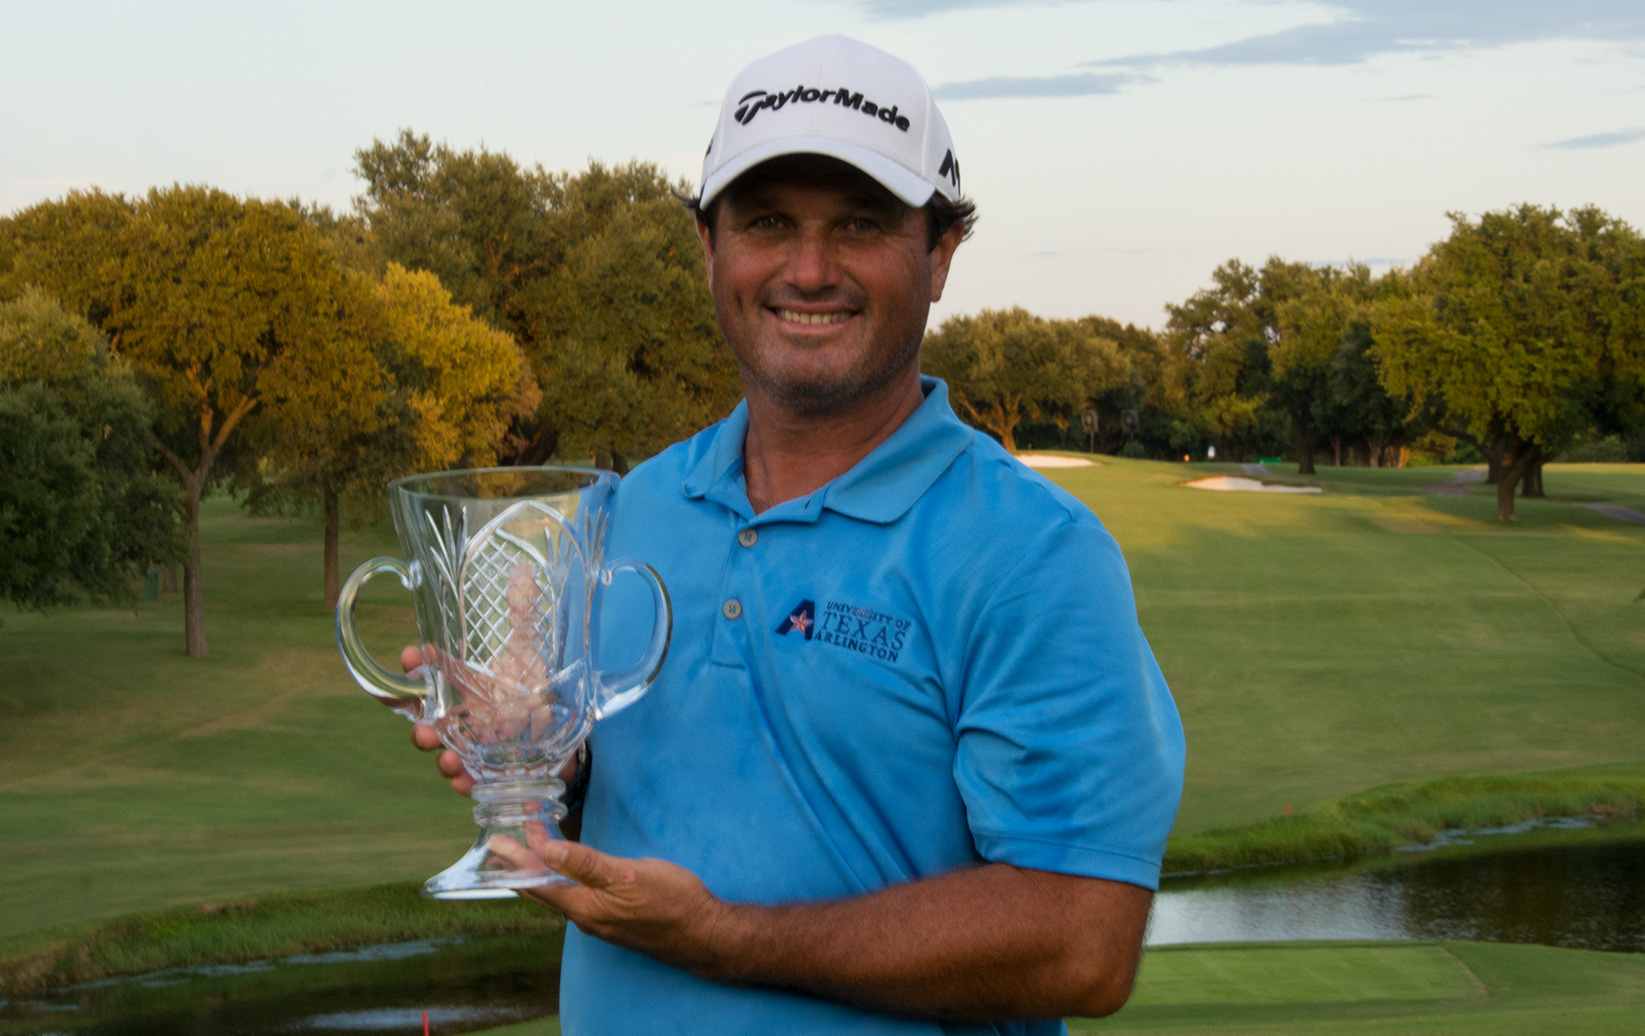 Deane Claims Joyce Crane / Ben Hogan Golf Equipment Company Section Championship, Nabs Exemption Into 2017 AT&T Byron Nelson